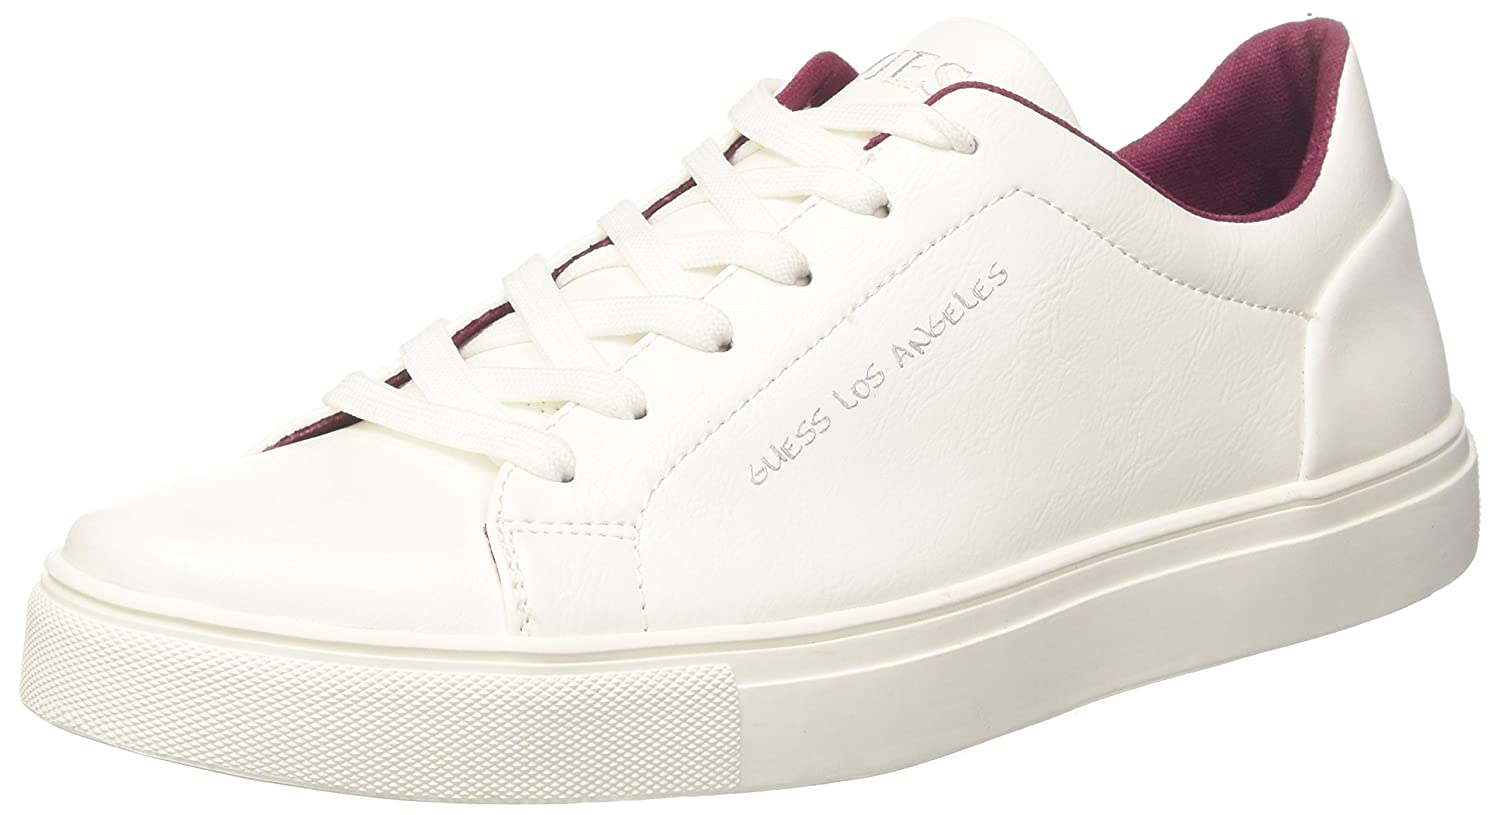 Mens Herry Low-Top Sneakers Guess i93ncvQkc